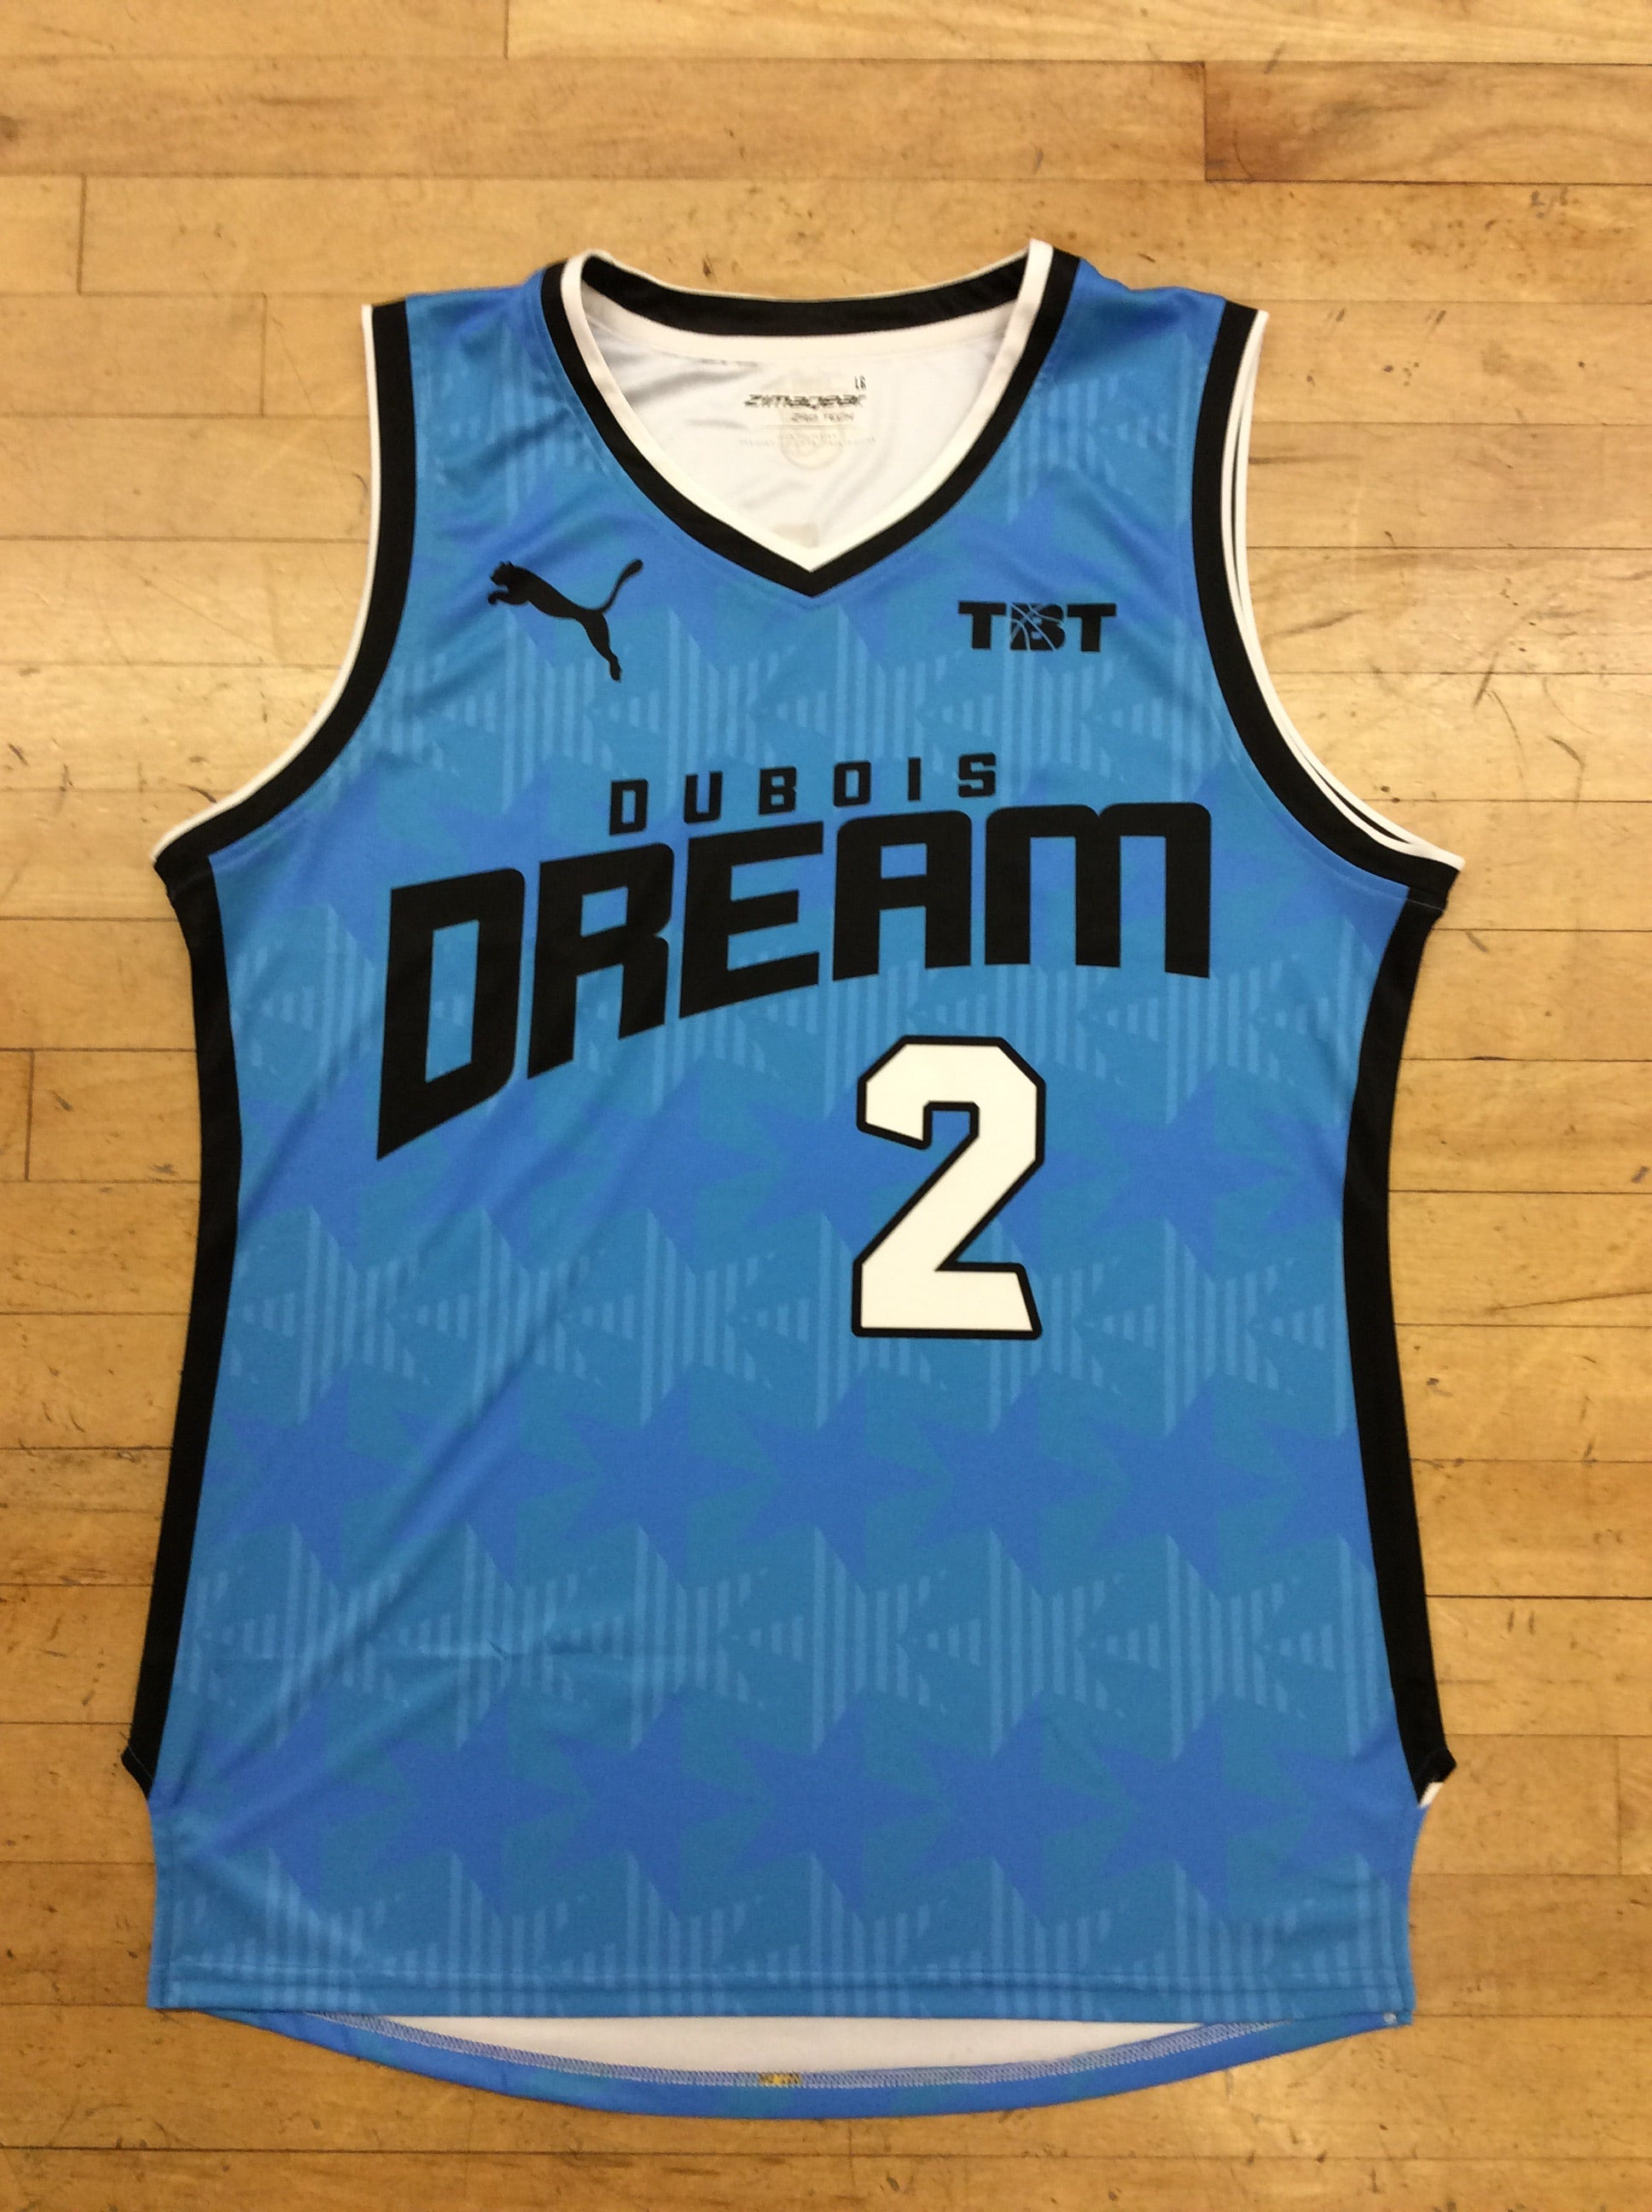 Dubois Dream - 2018 Official Jersey